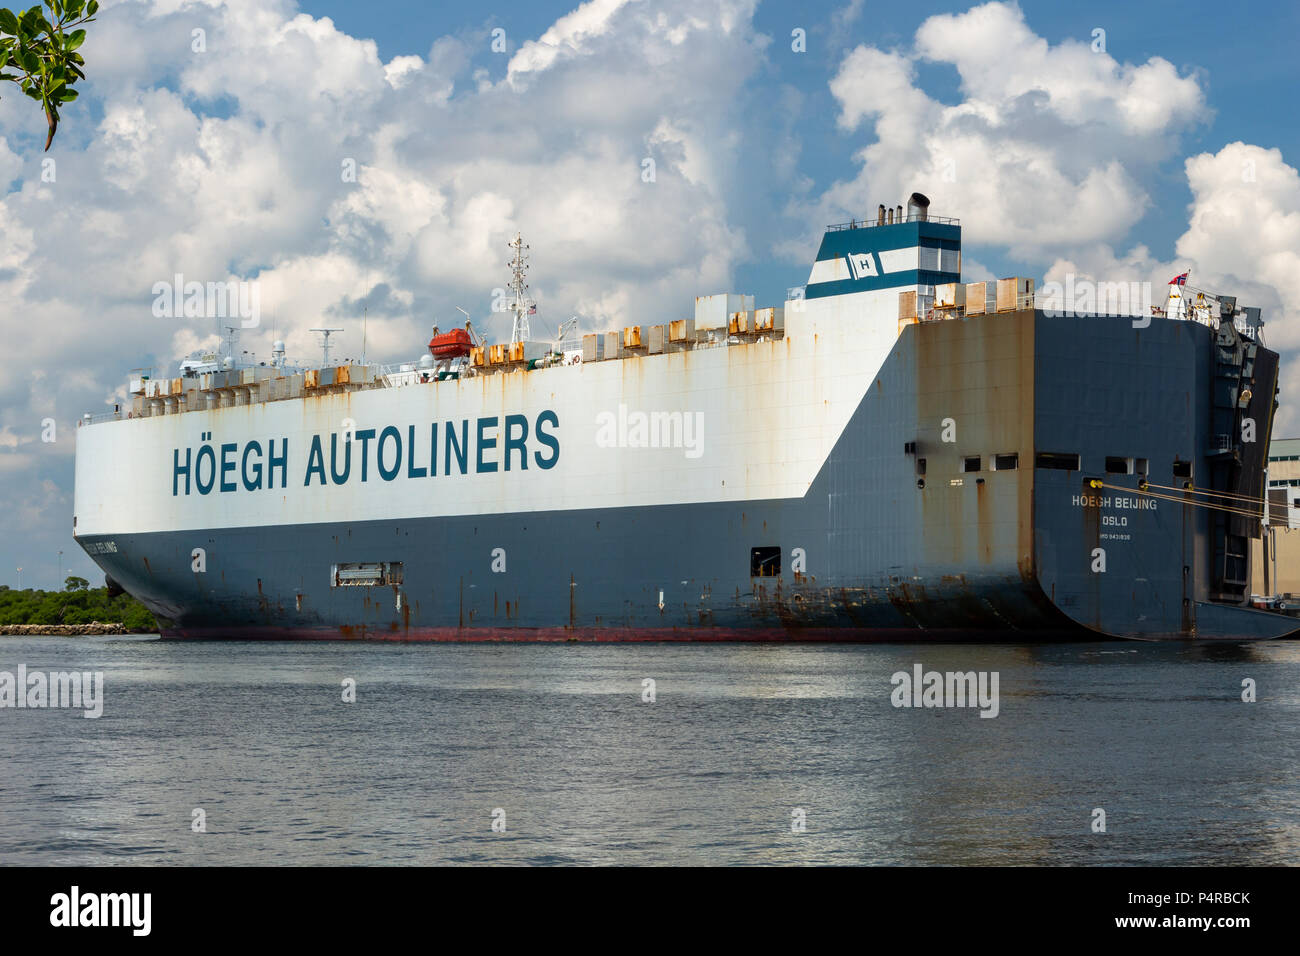 Hoegh Autoliners Pure Car and Truck Carrier ship at Port Everglades - Fort Lauderdale, Florida, USA - Stock Image